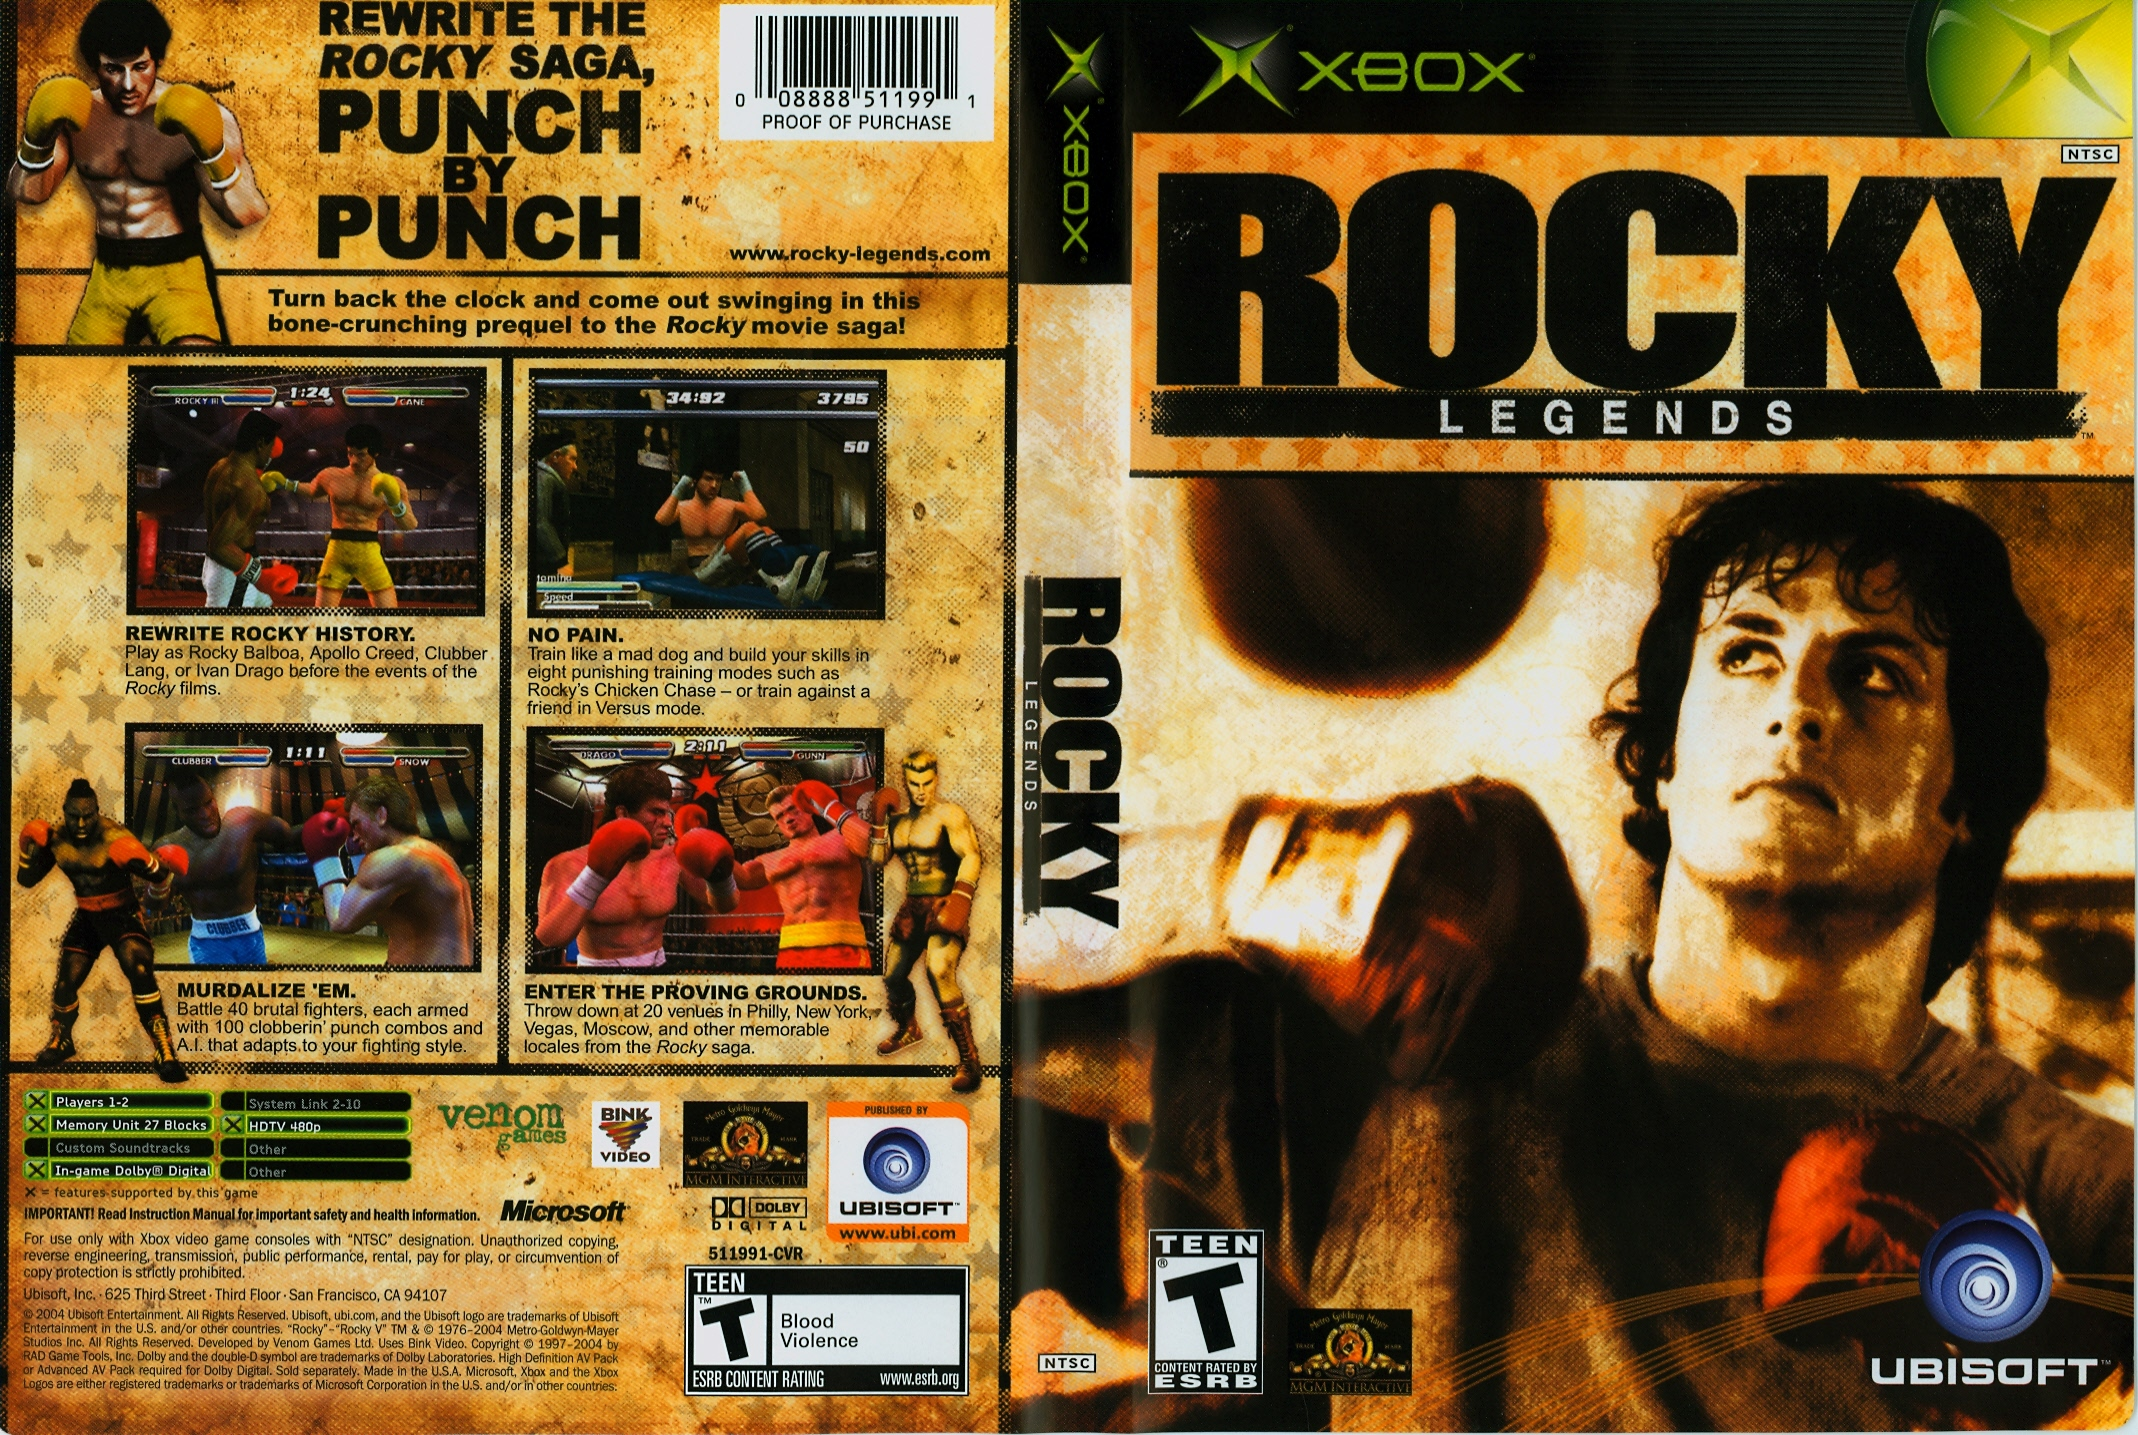 Boxing Games For Xbox One : Xbox one news rocky balboa offers advice on how 'winning